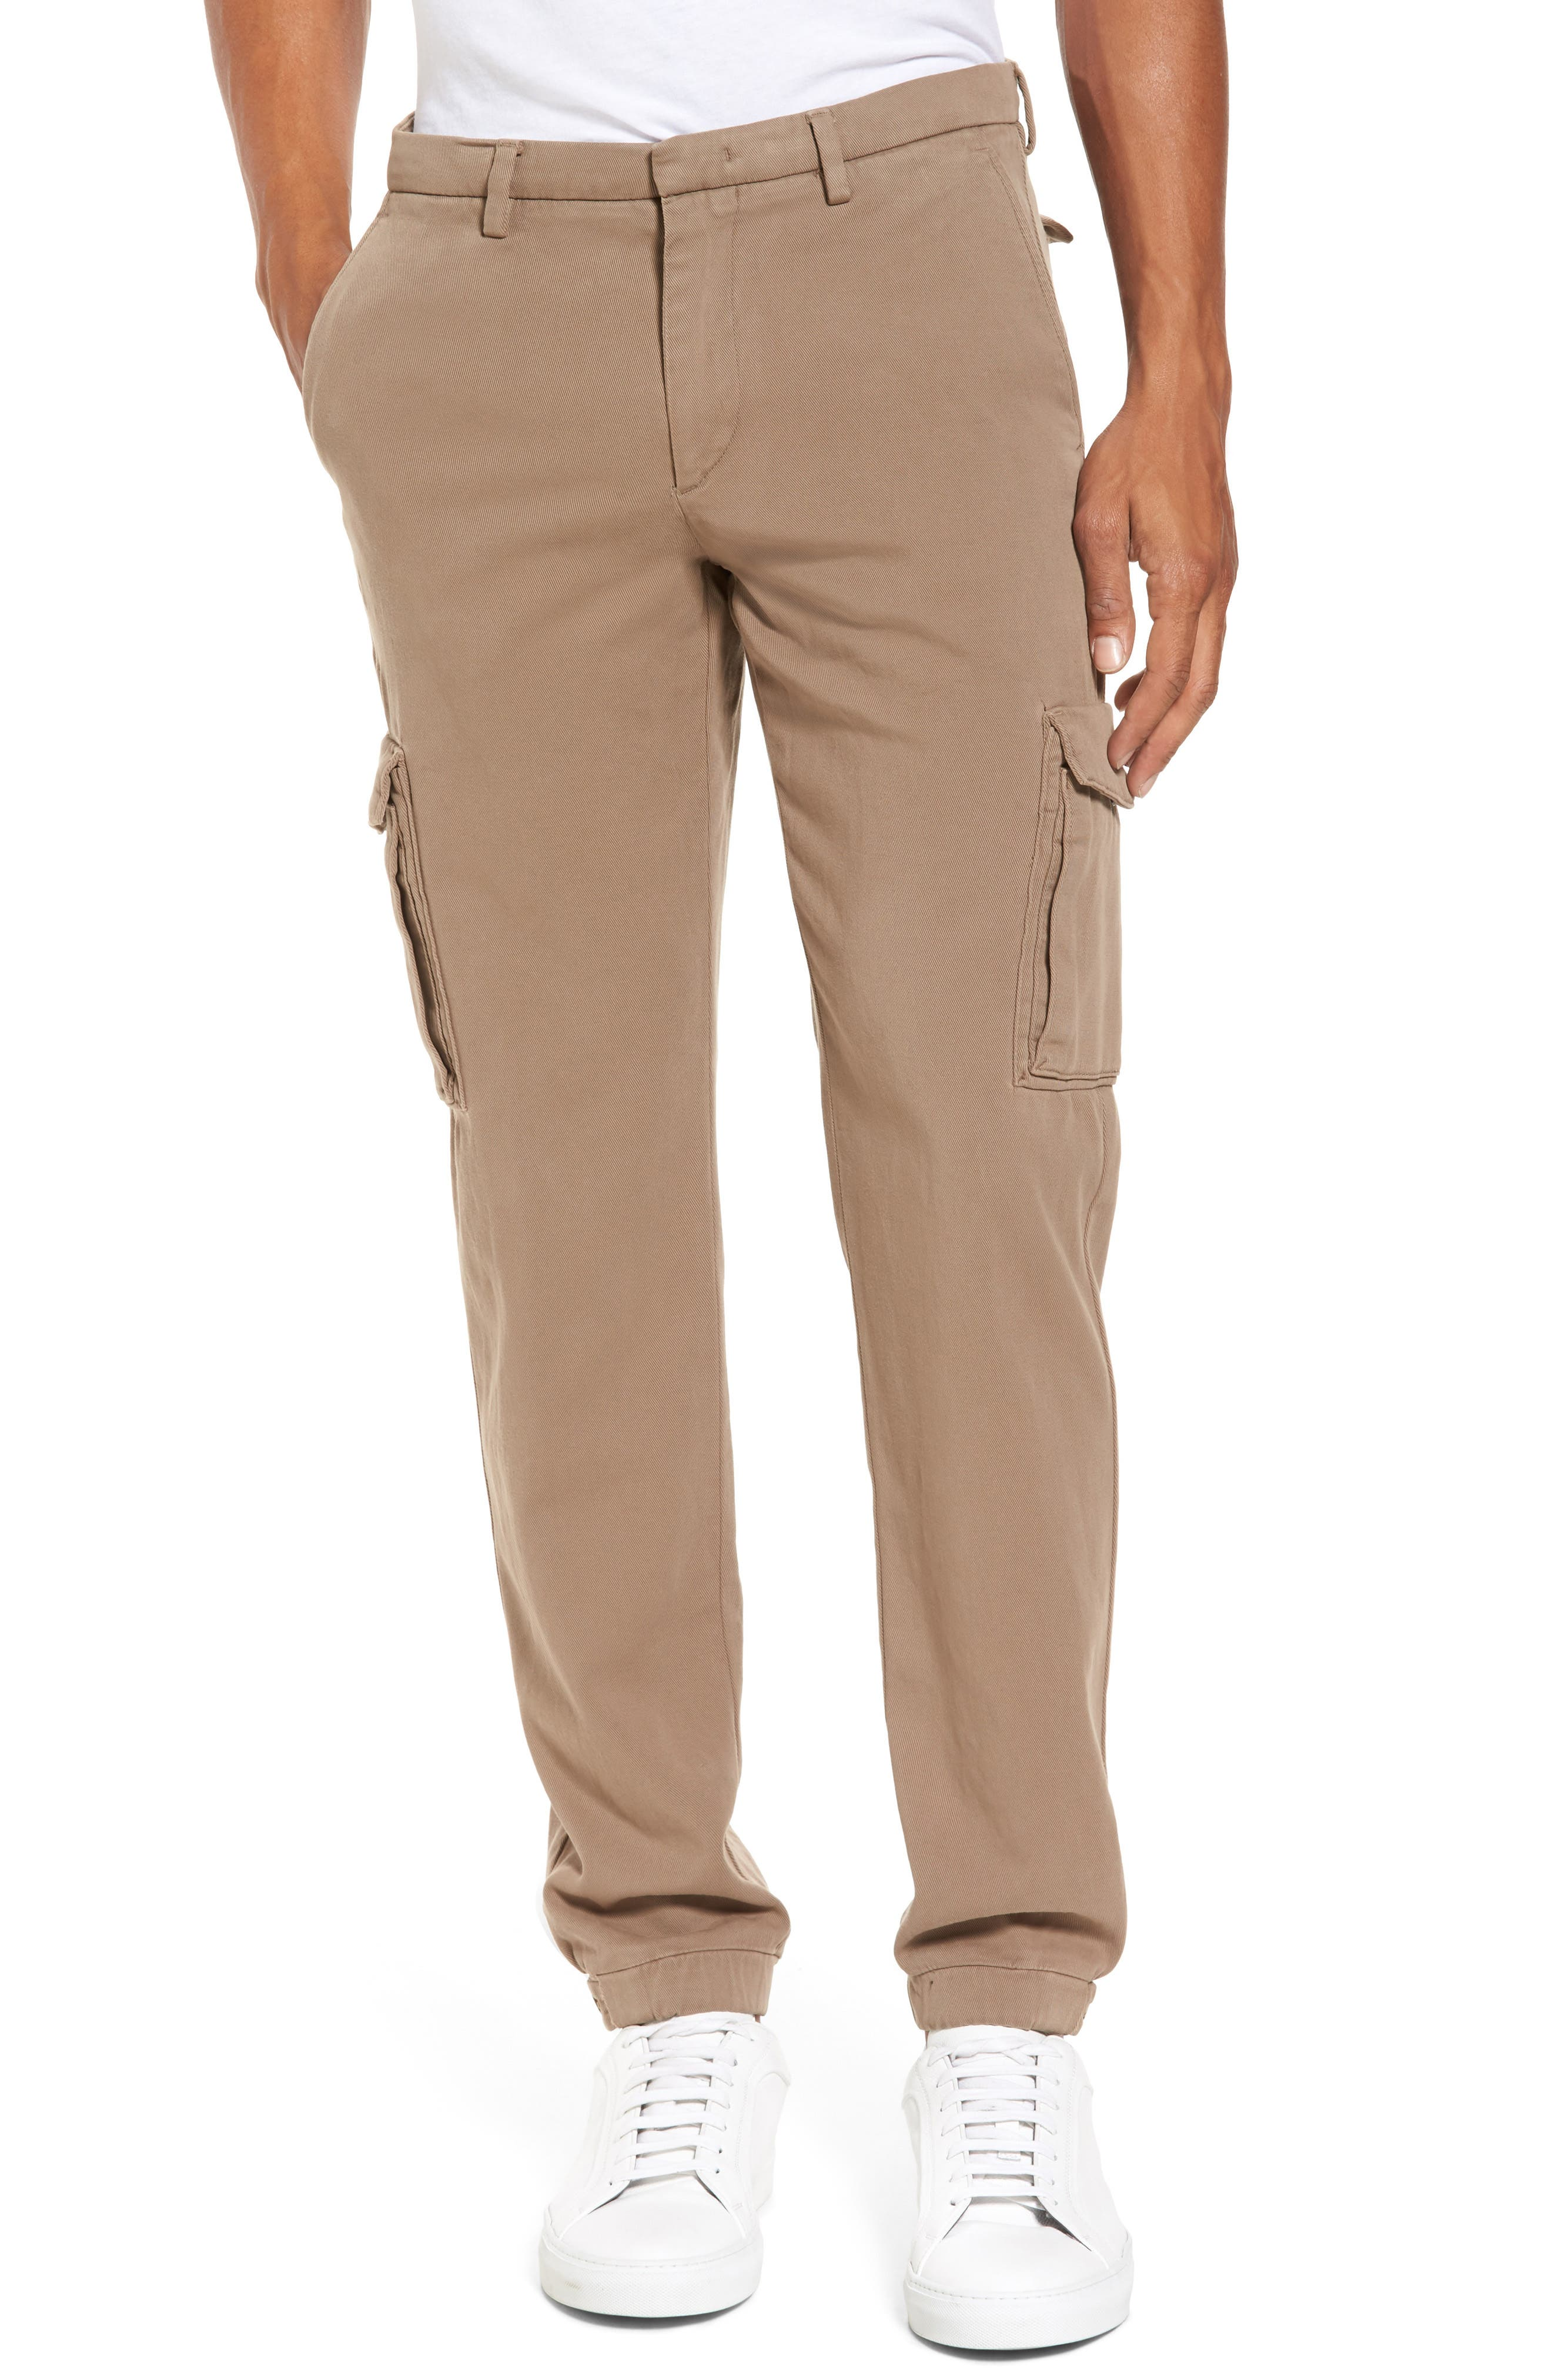 Kaigo Slim Jogger Pants,                             Main thumbnail 1, color,                             Khaki